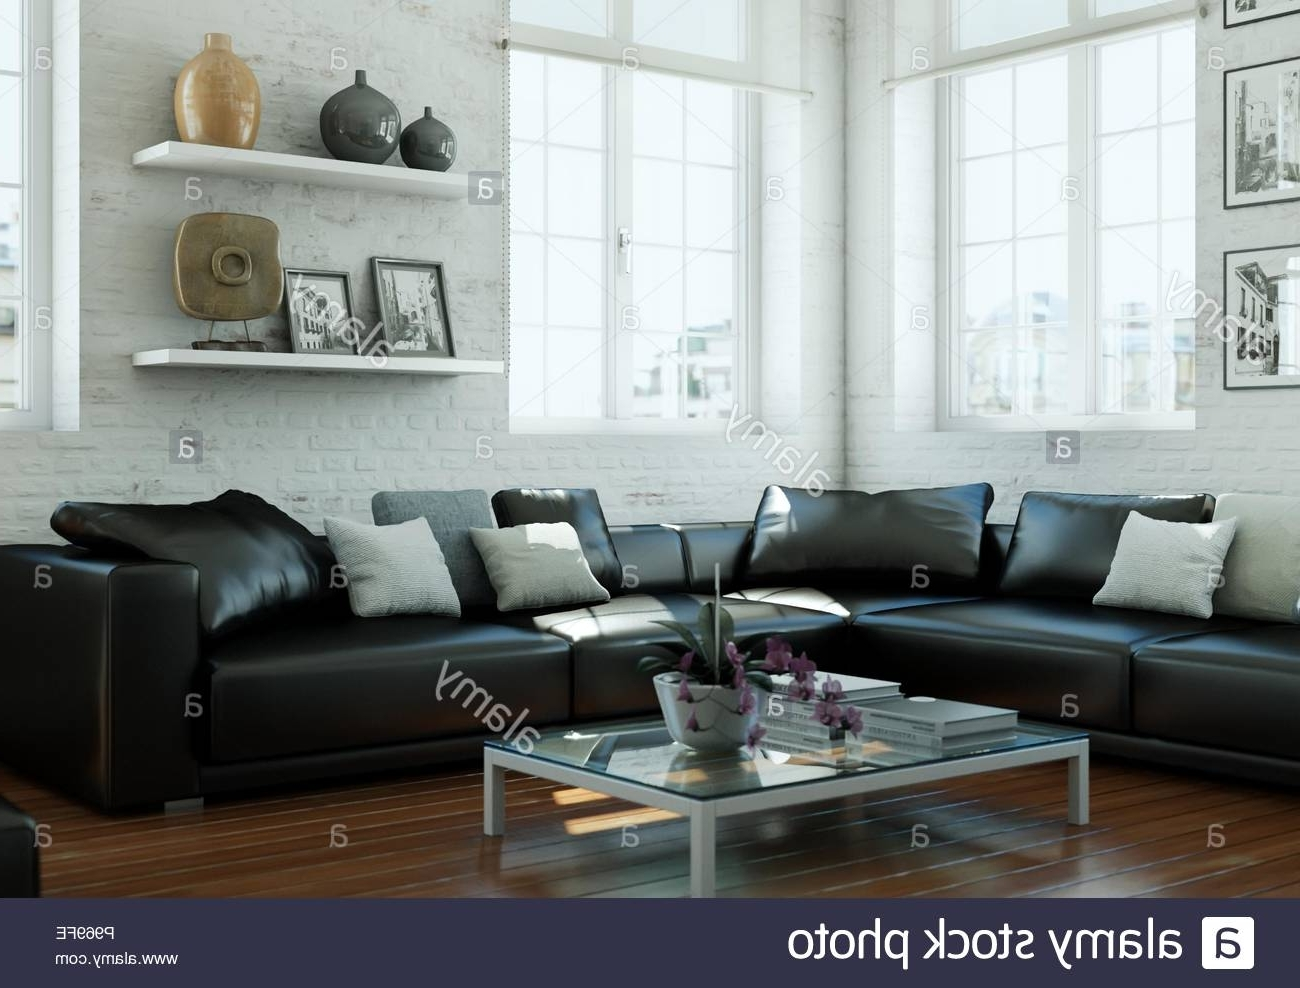 Modern Skandinavian Interior Design Living Room With Black Living Room Decorating Black Leather Couch